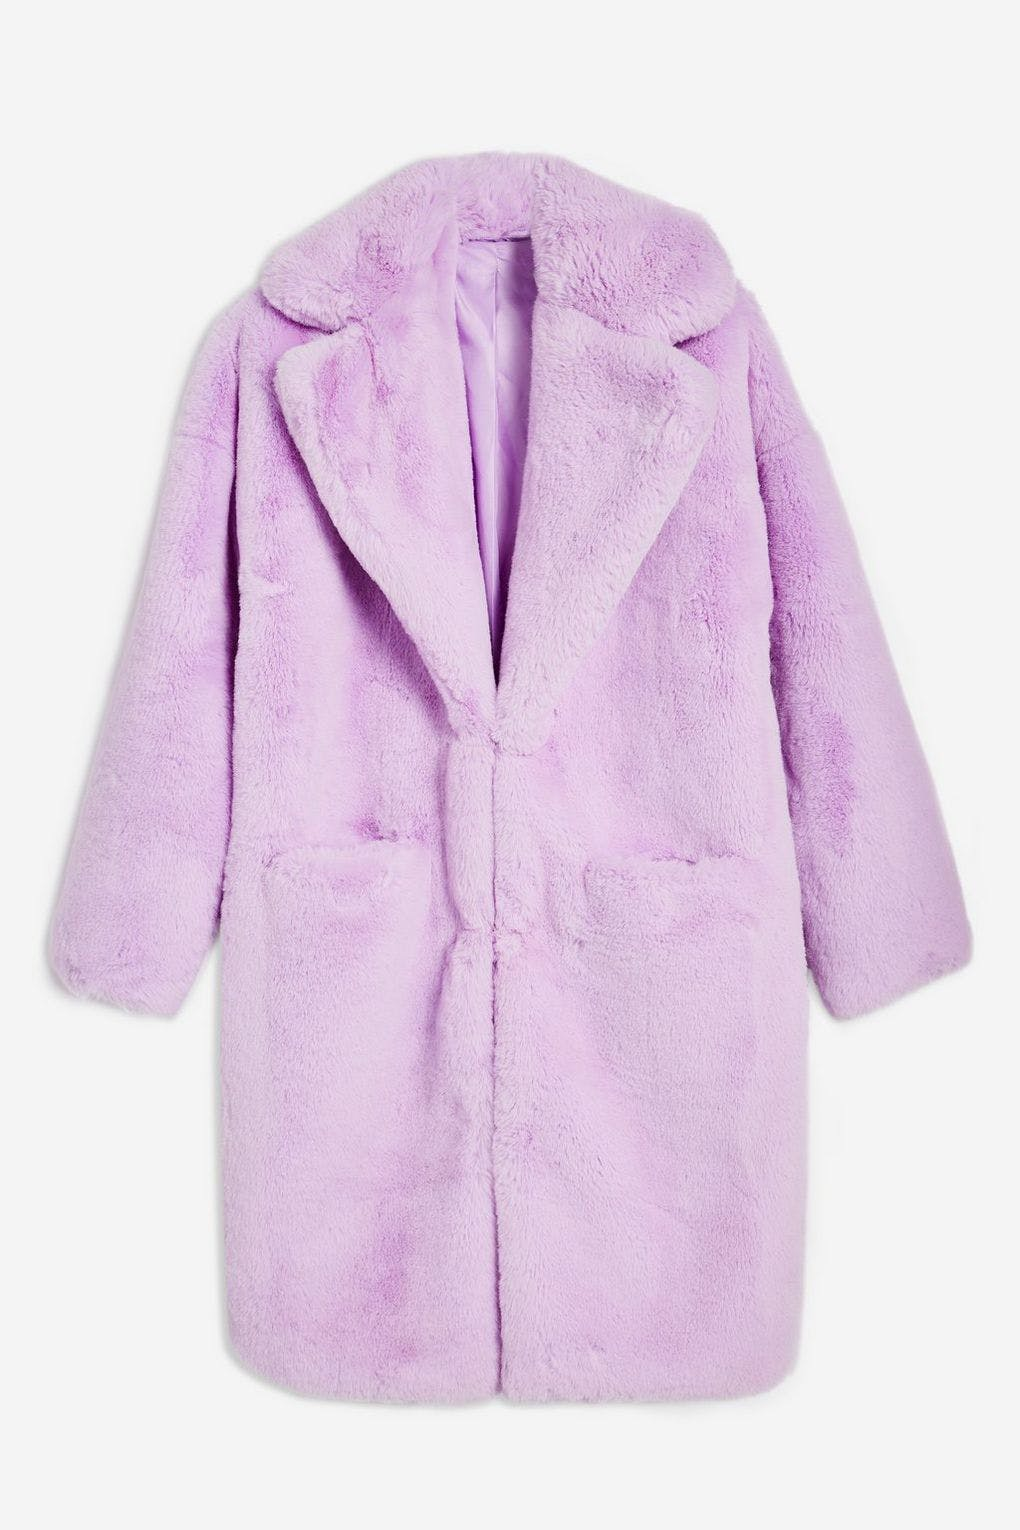 5 Stylish Ways To Wear Pastels For Winter